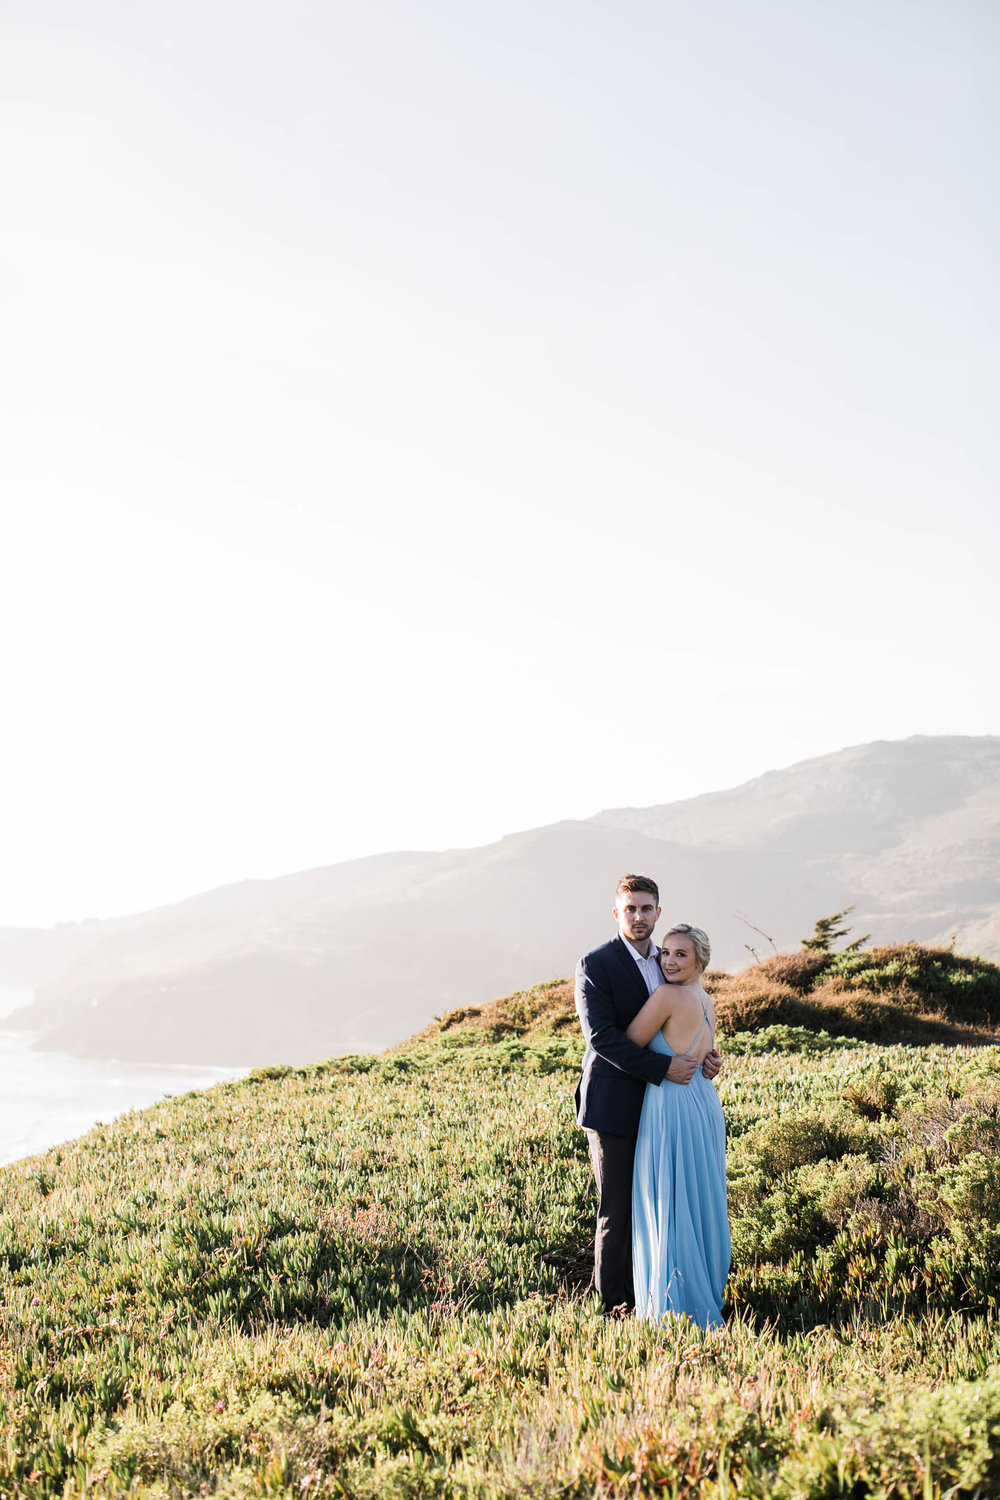 032818_C+S_Marin Headlands Engagement_Buena Lane Photography_0132.jpg